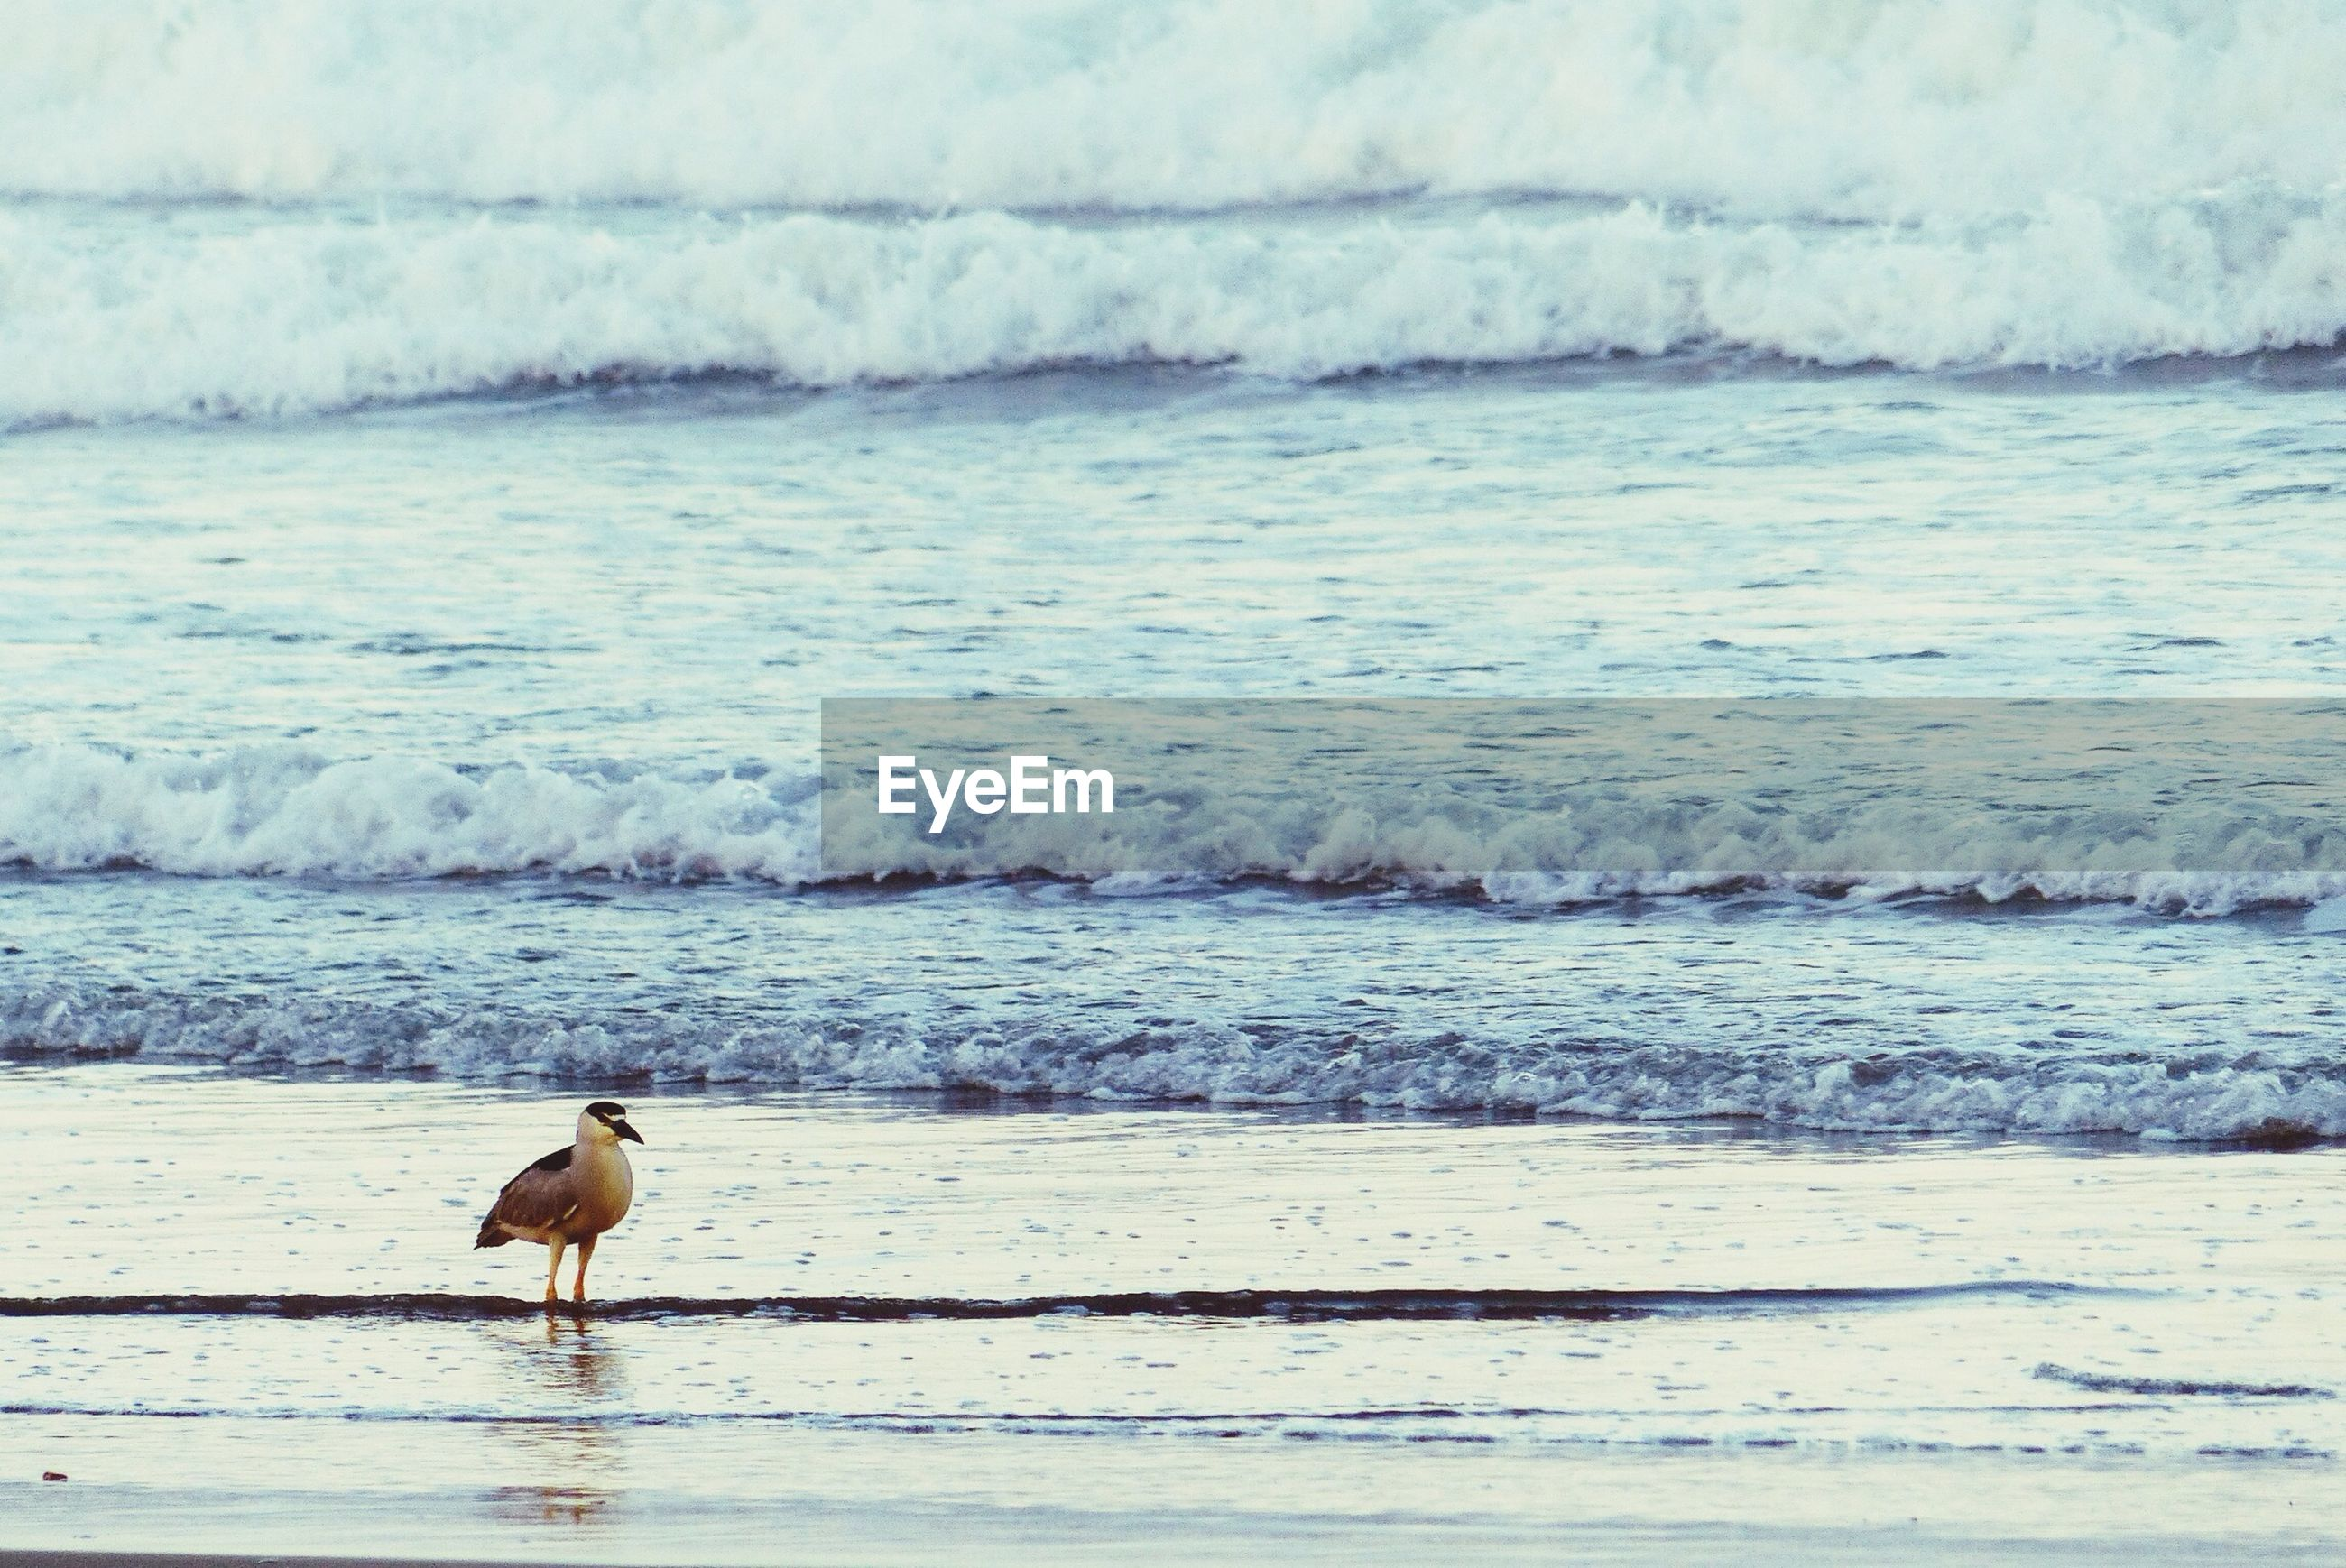 animal themes, one animal, water, sea, animals in the wild, bird, wildlife, beach, nature, seagull, beauty in nature, wave, shore, full length, mammal, tranquility, day, outdoors, perching, cold temperature